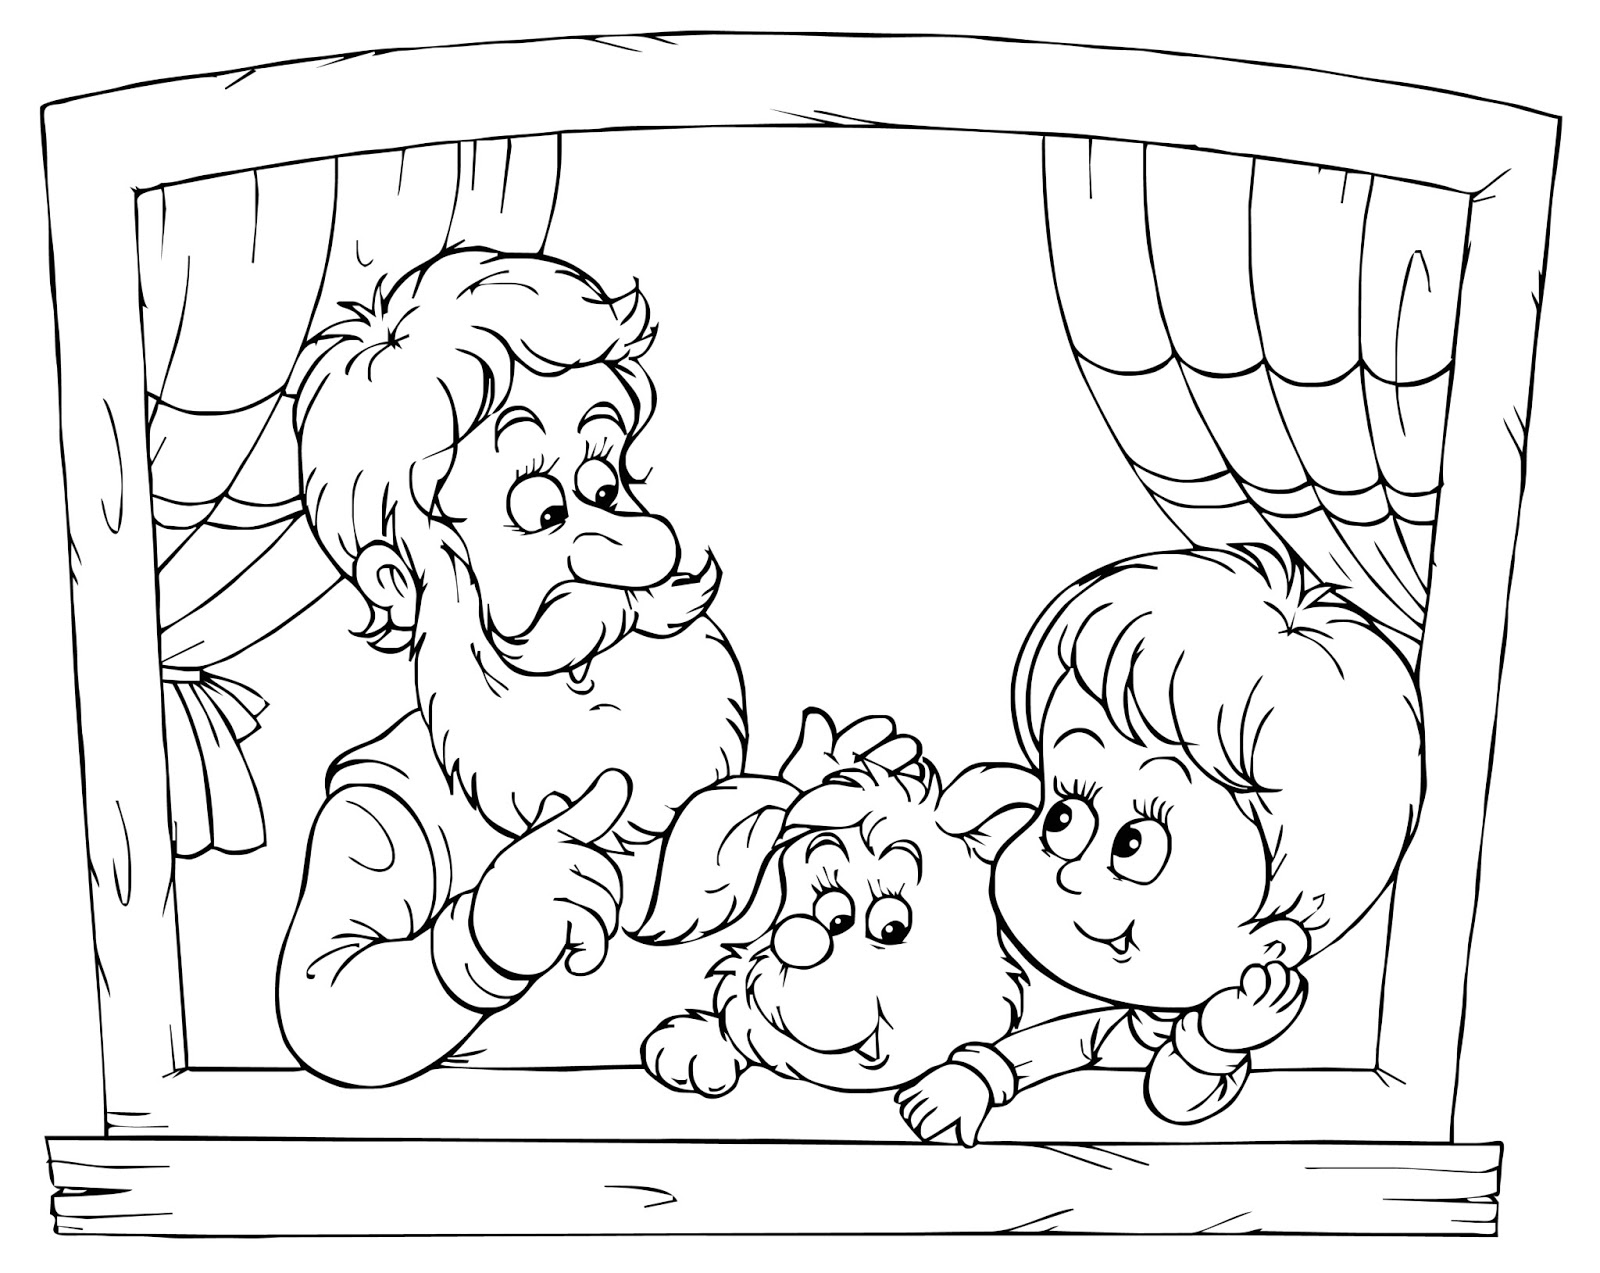 k coloring pages for kids - photo #32